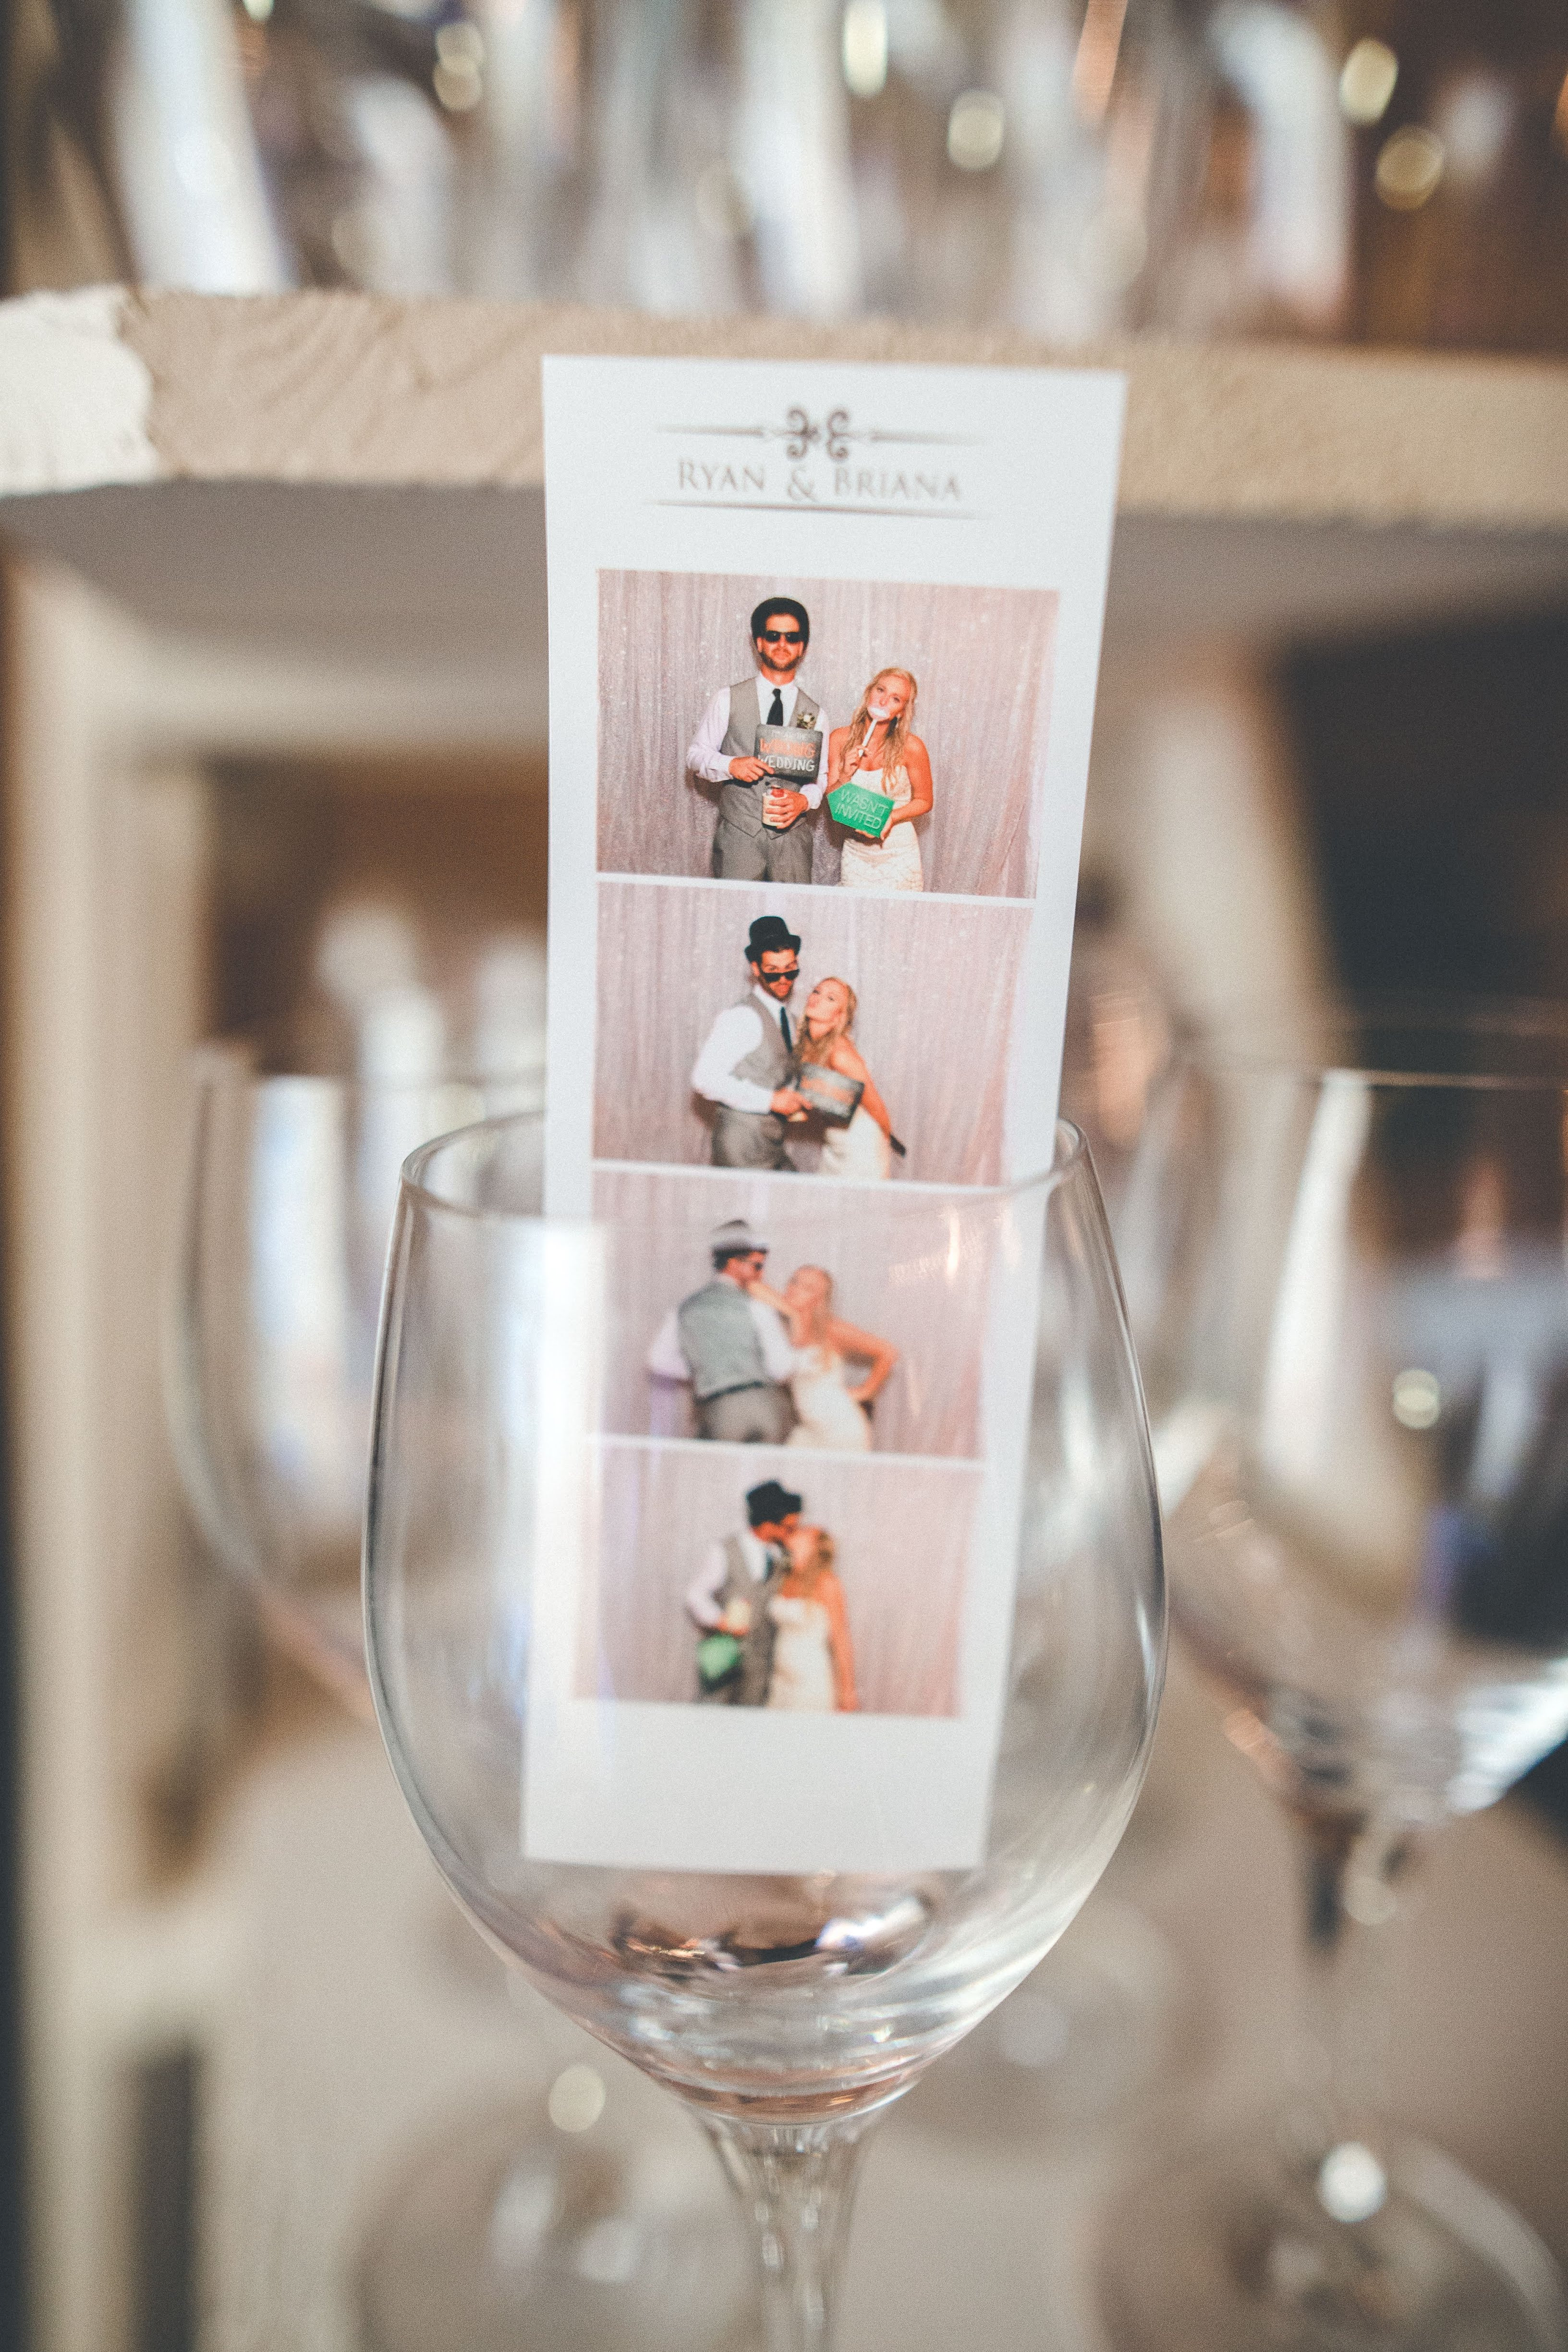 Extra Photo Booth Prints